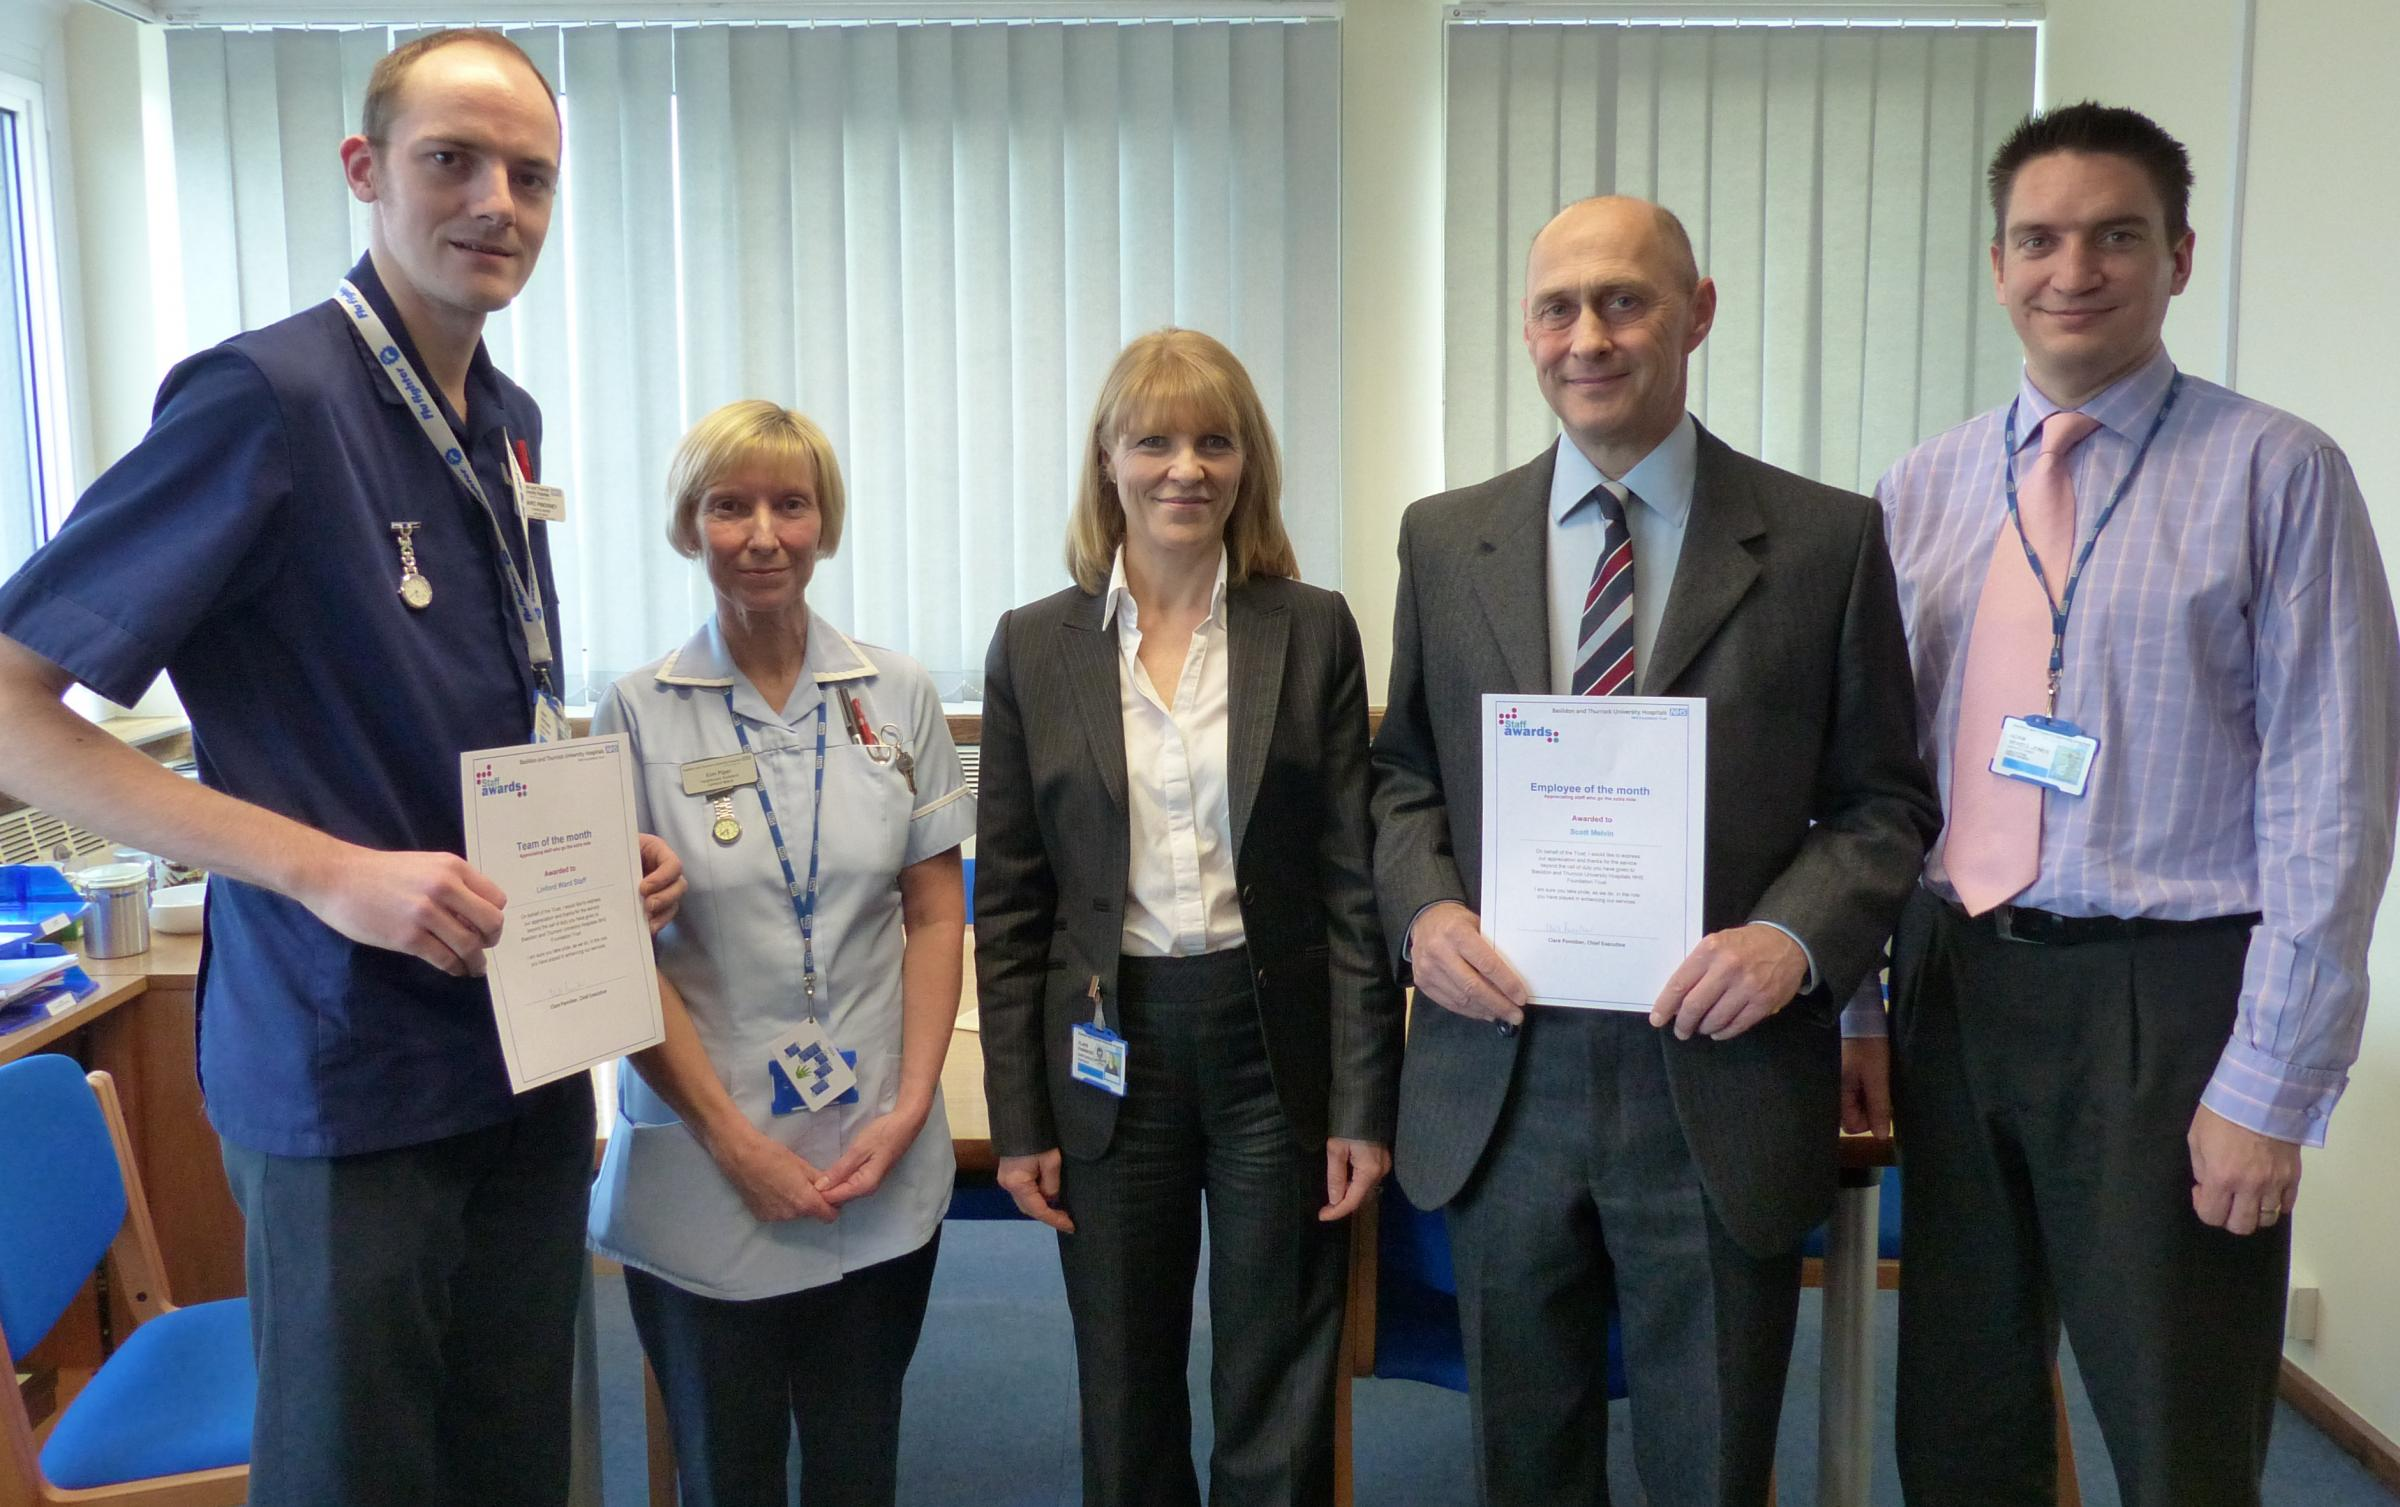 Recognition – hospital chief executive Clare Panniker, centre, flanked on the left by Mark Pinckney, and Kim Piper from Linford Ward, and on the right by senior perfusionis